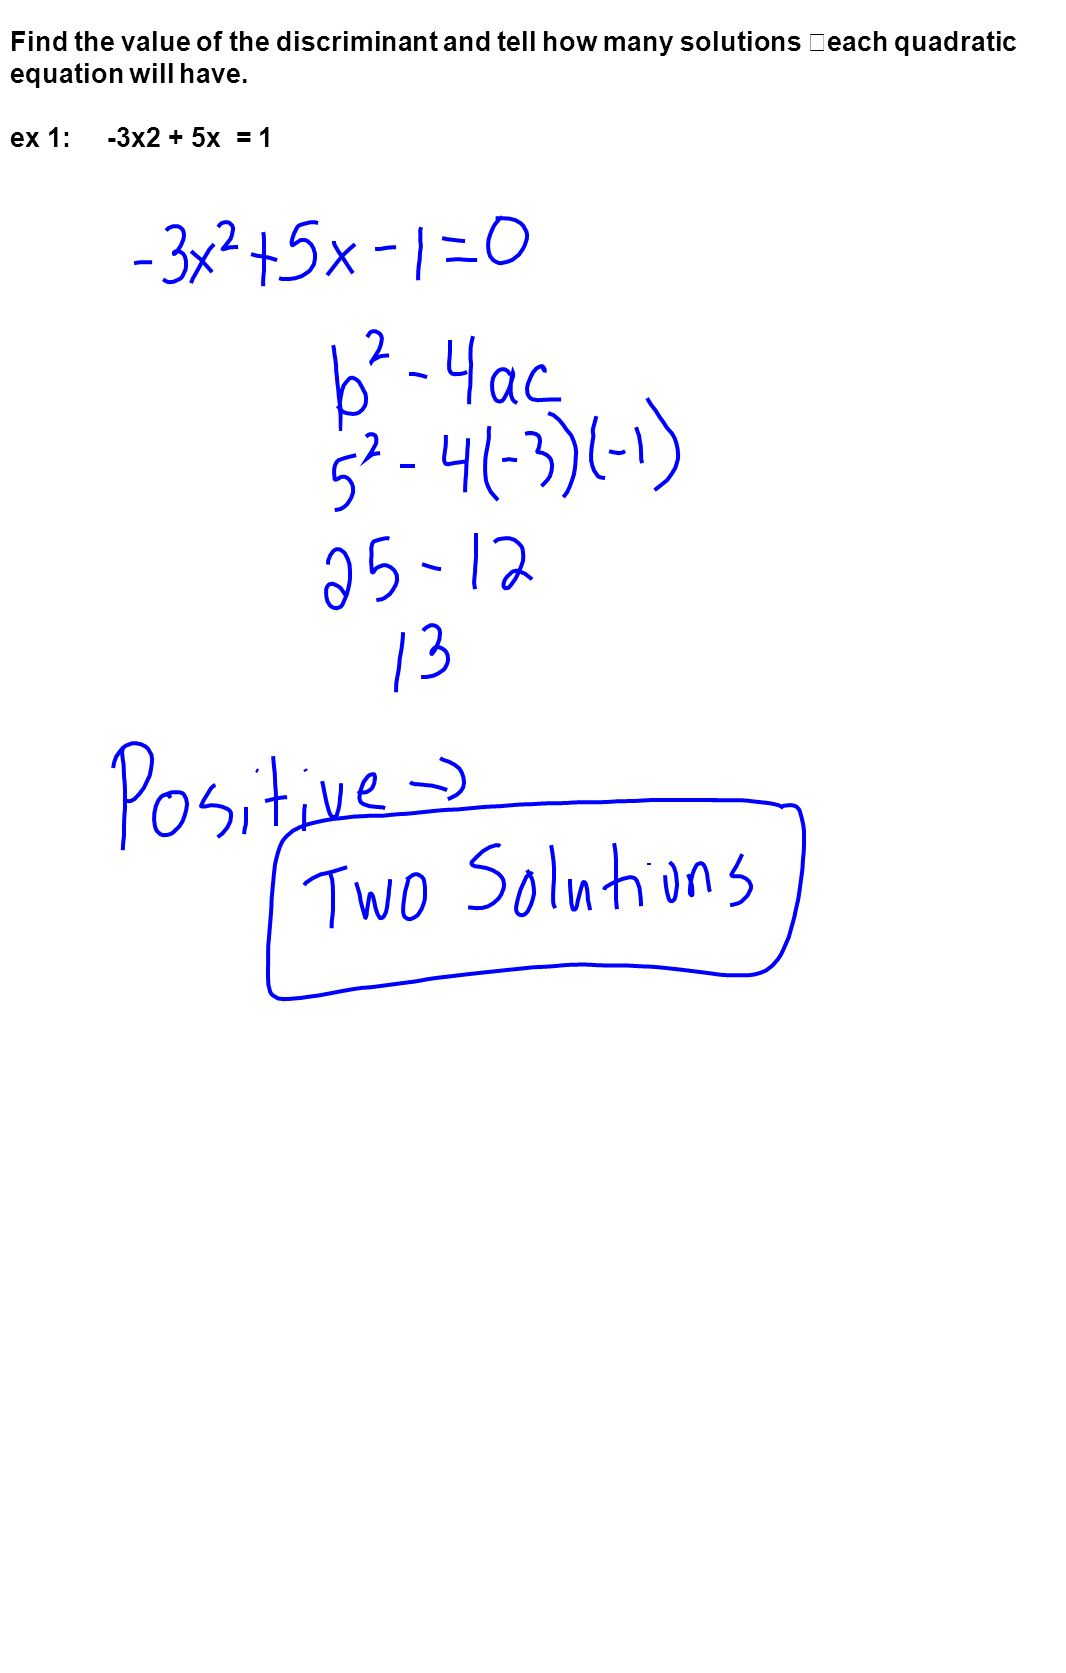 Find the value of the discriminant and tell how many solutions each quadratic equation will have.